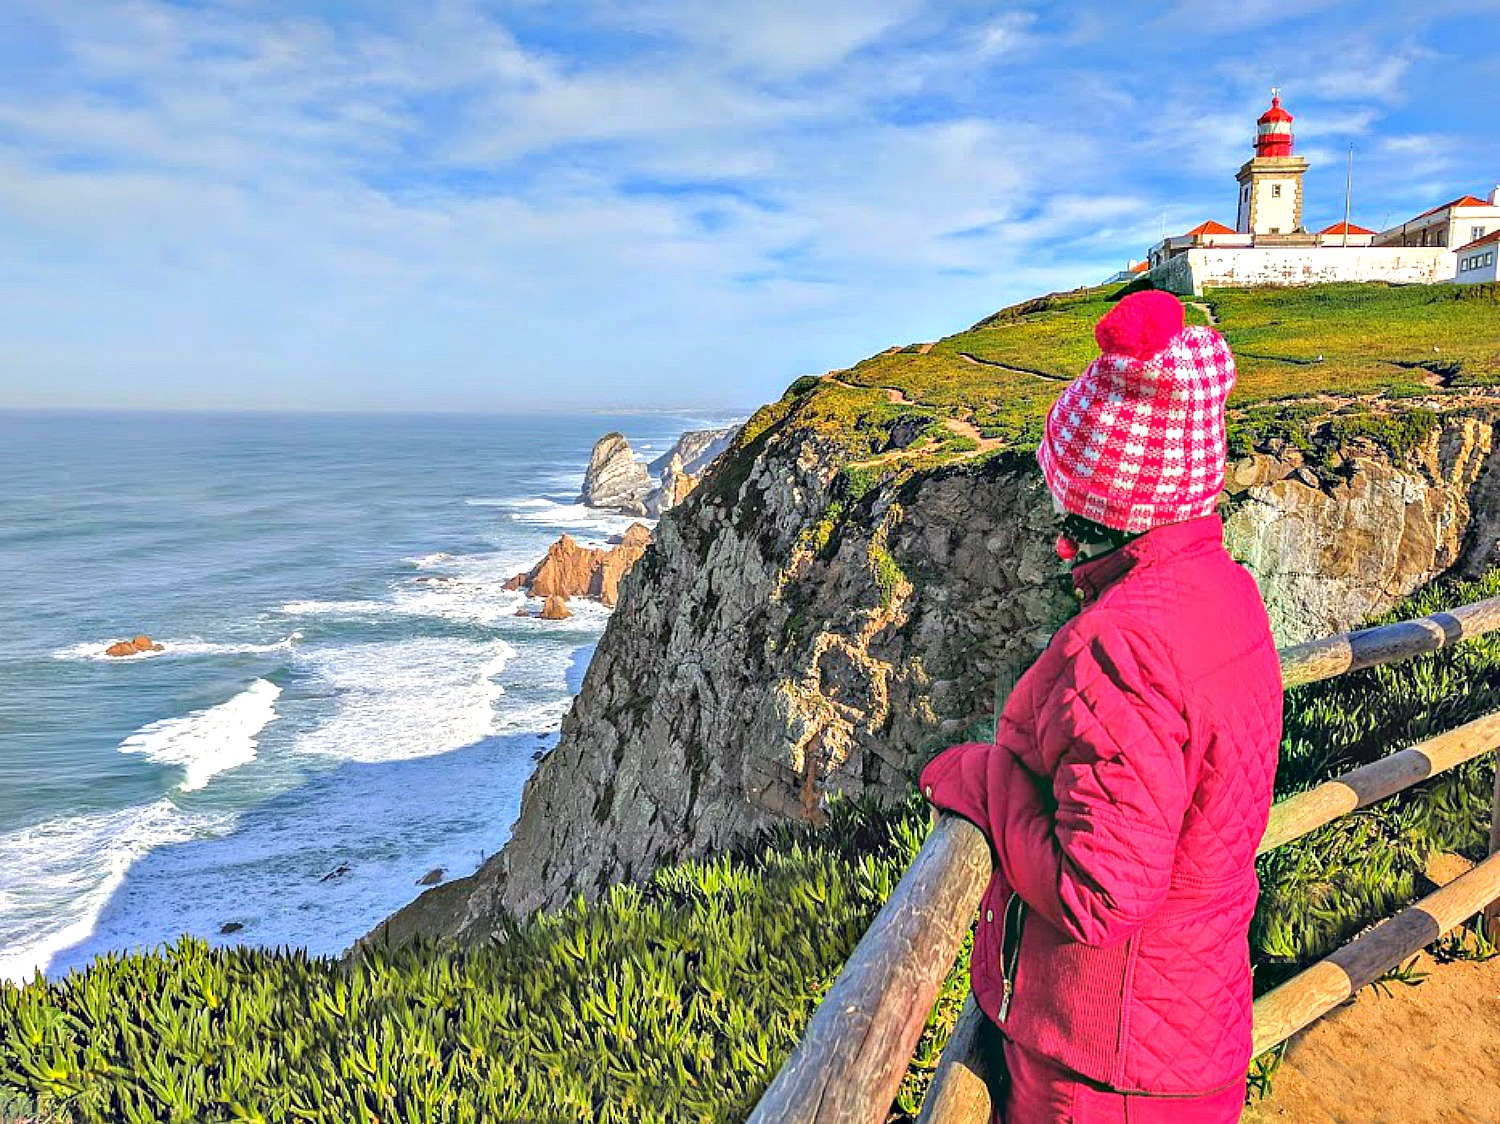 Portugal - one week itinerary. At Cabo da Roca, you will see and feel the power of the Atlantic Ocean.